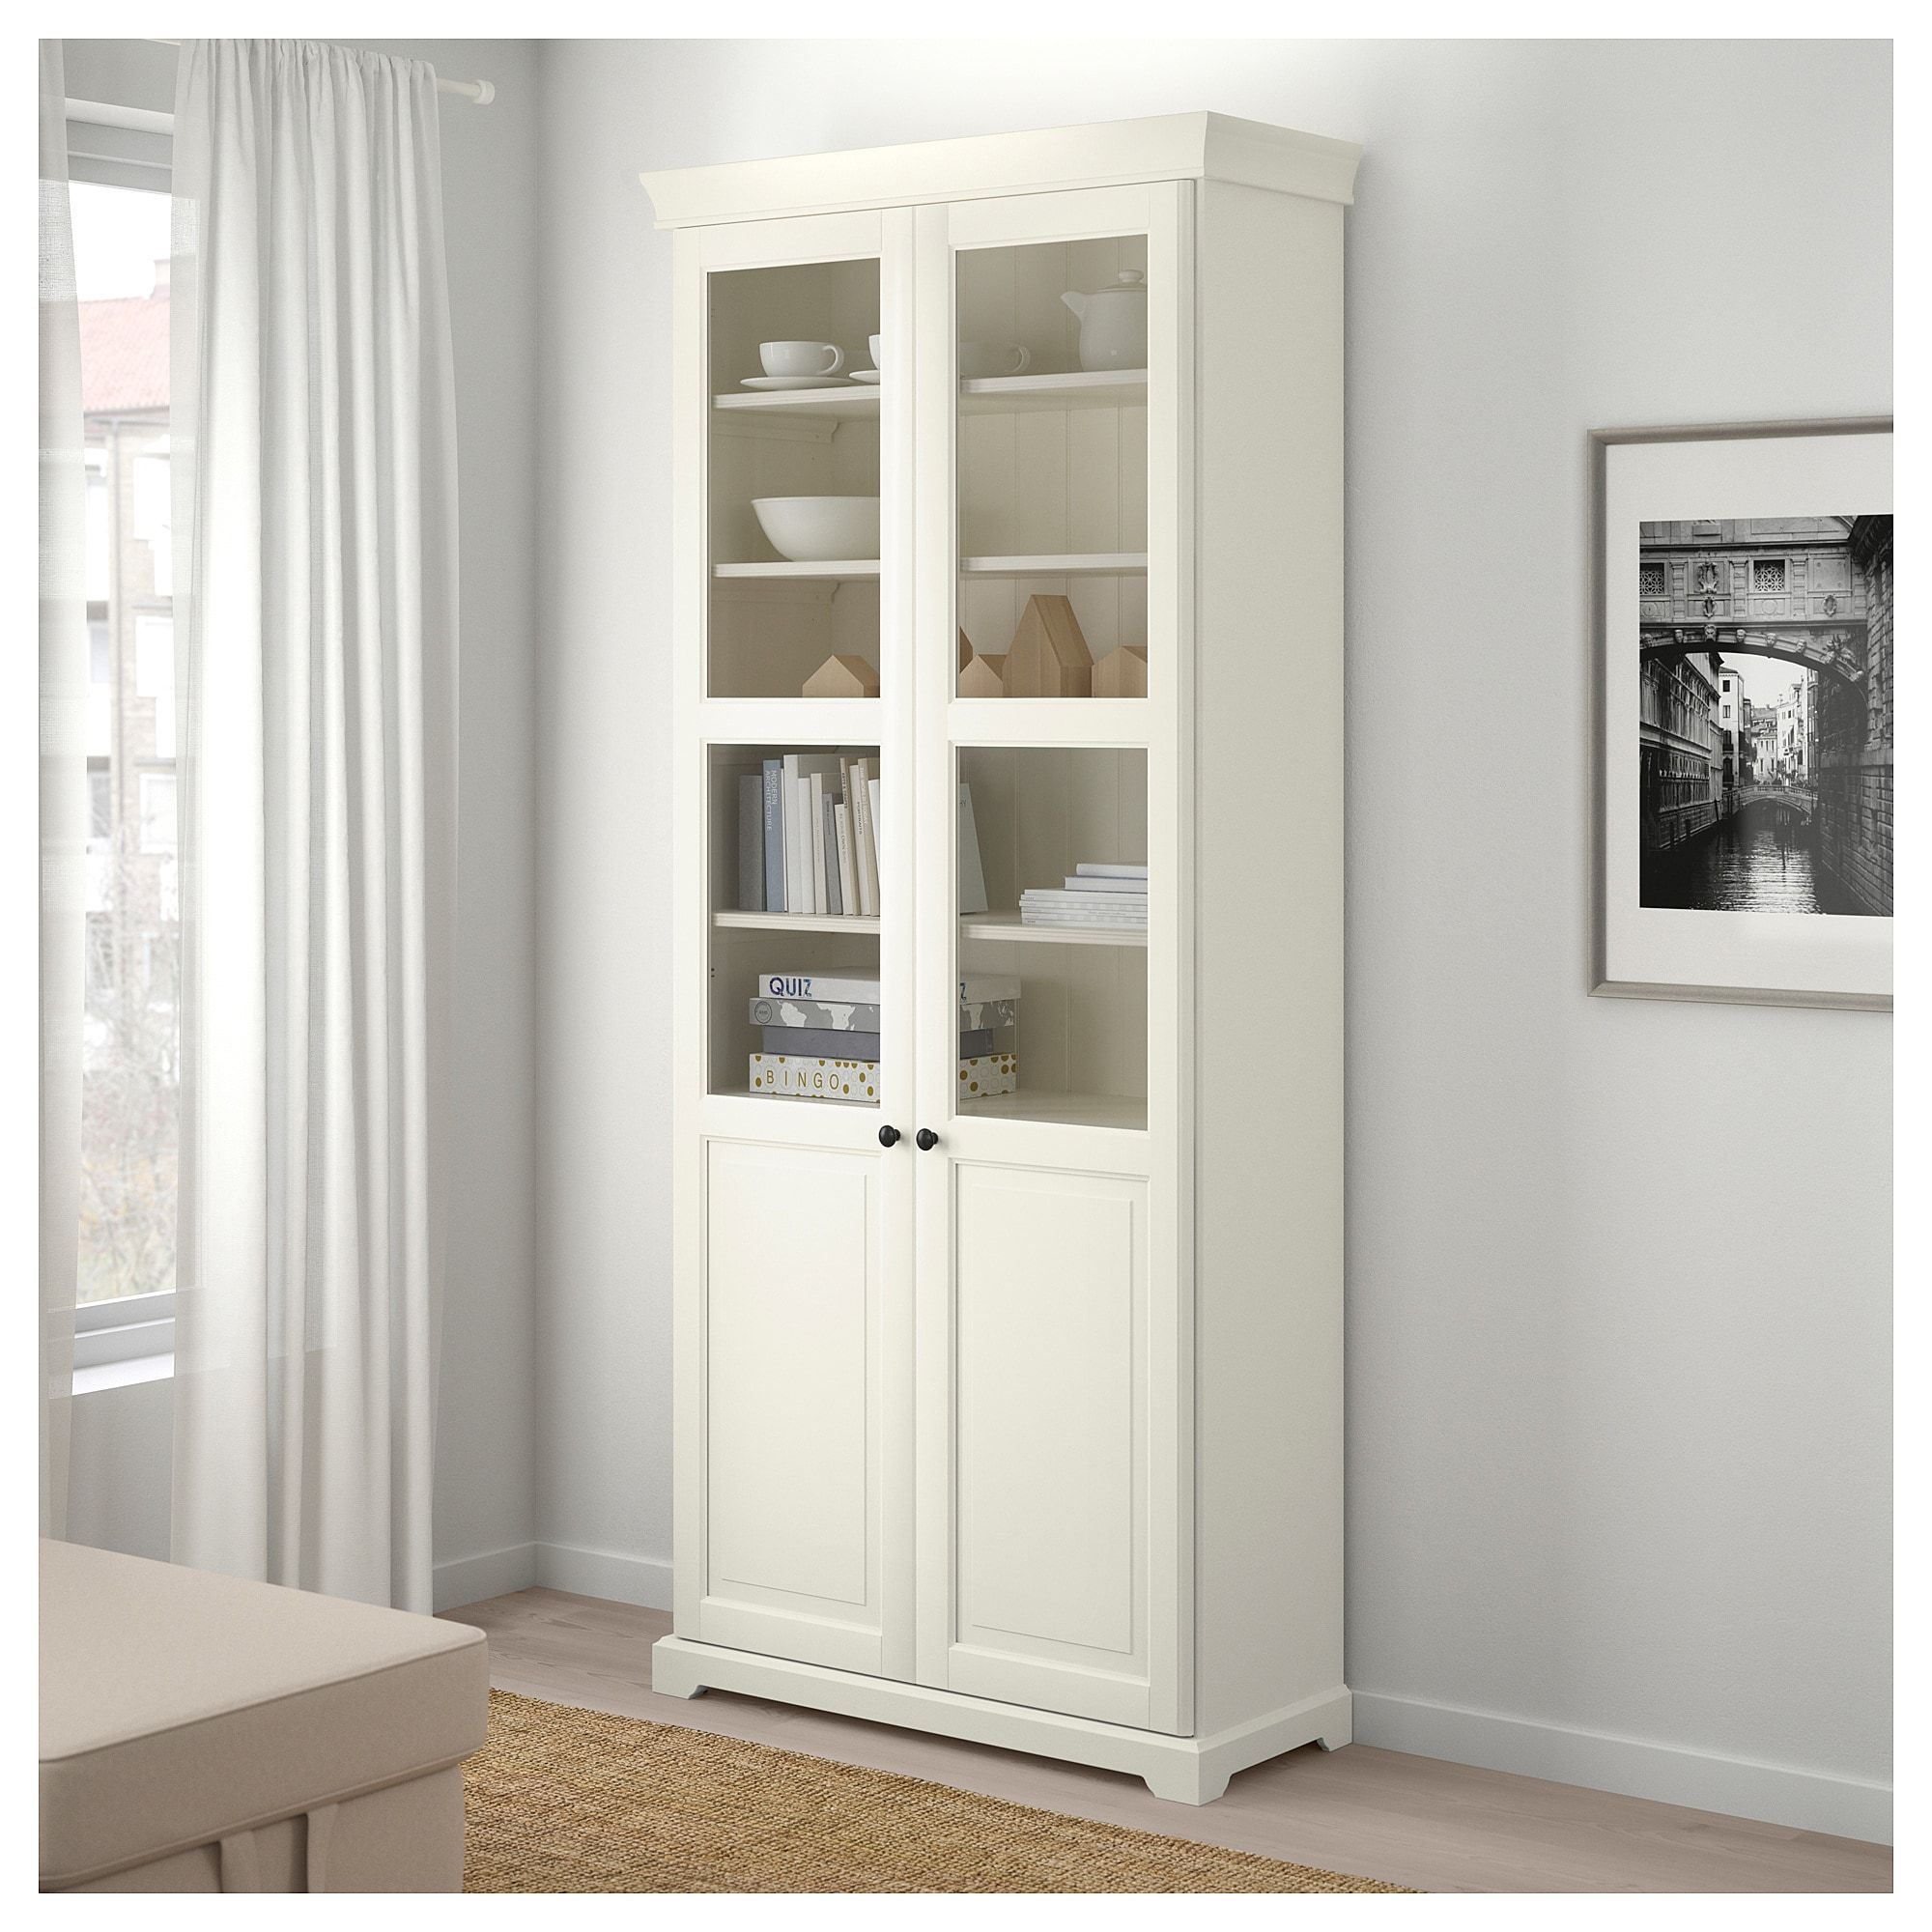 Ikea Liatorp Bookcase With Glass Doors White In 2019